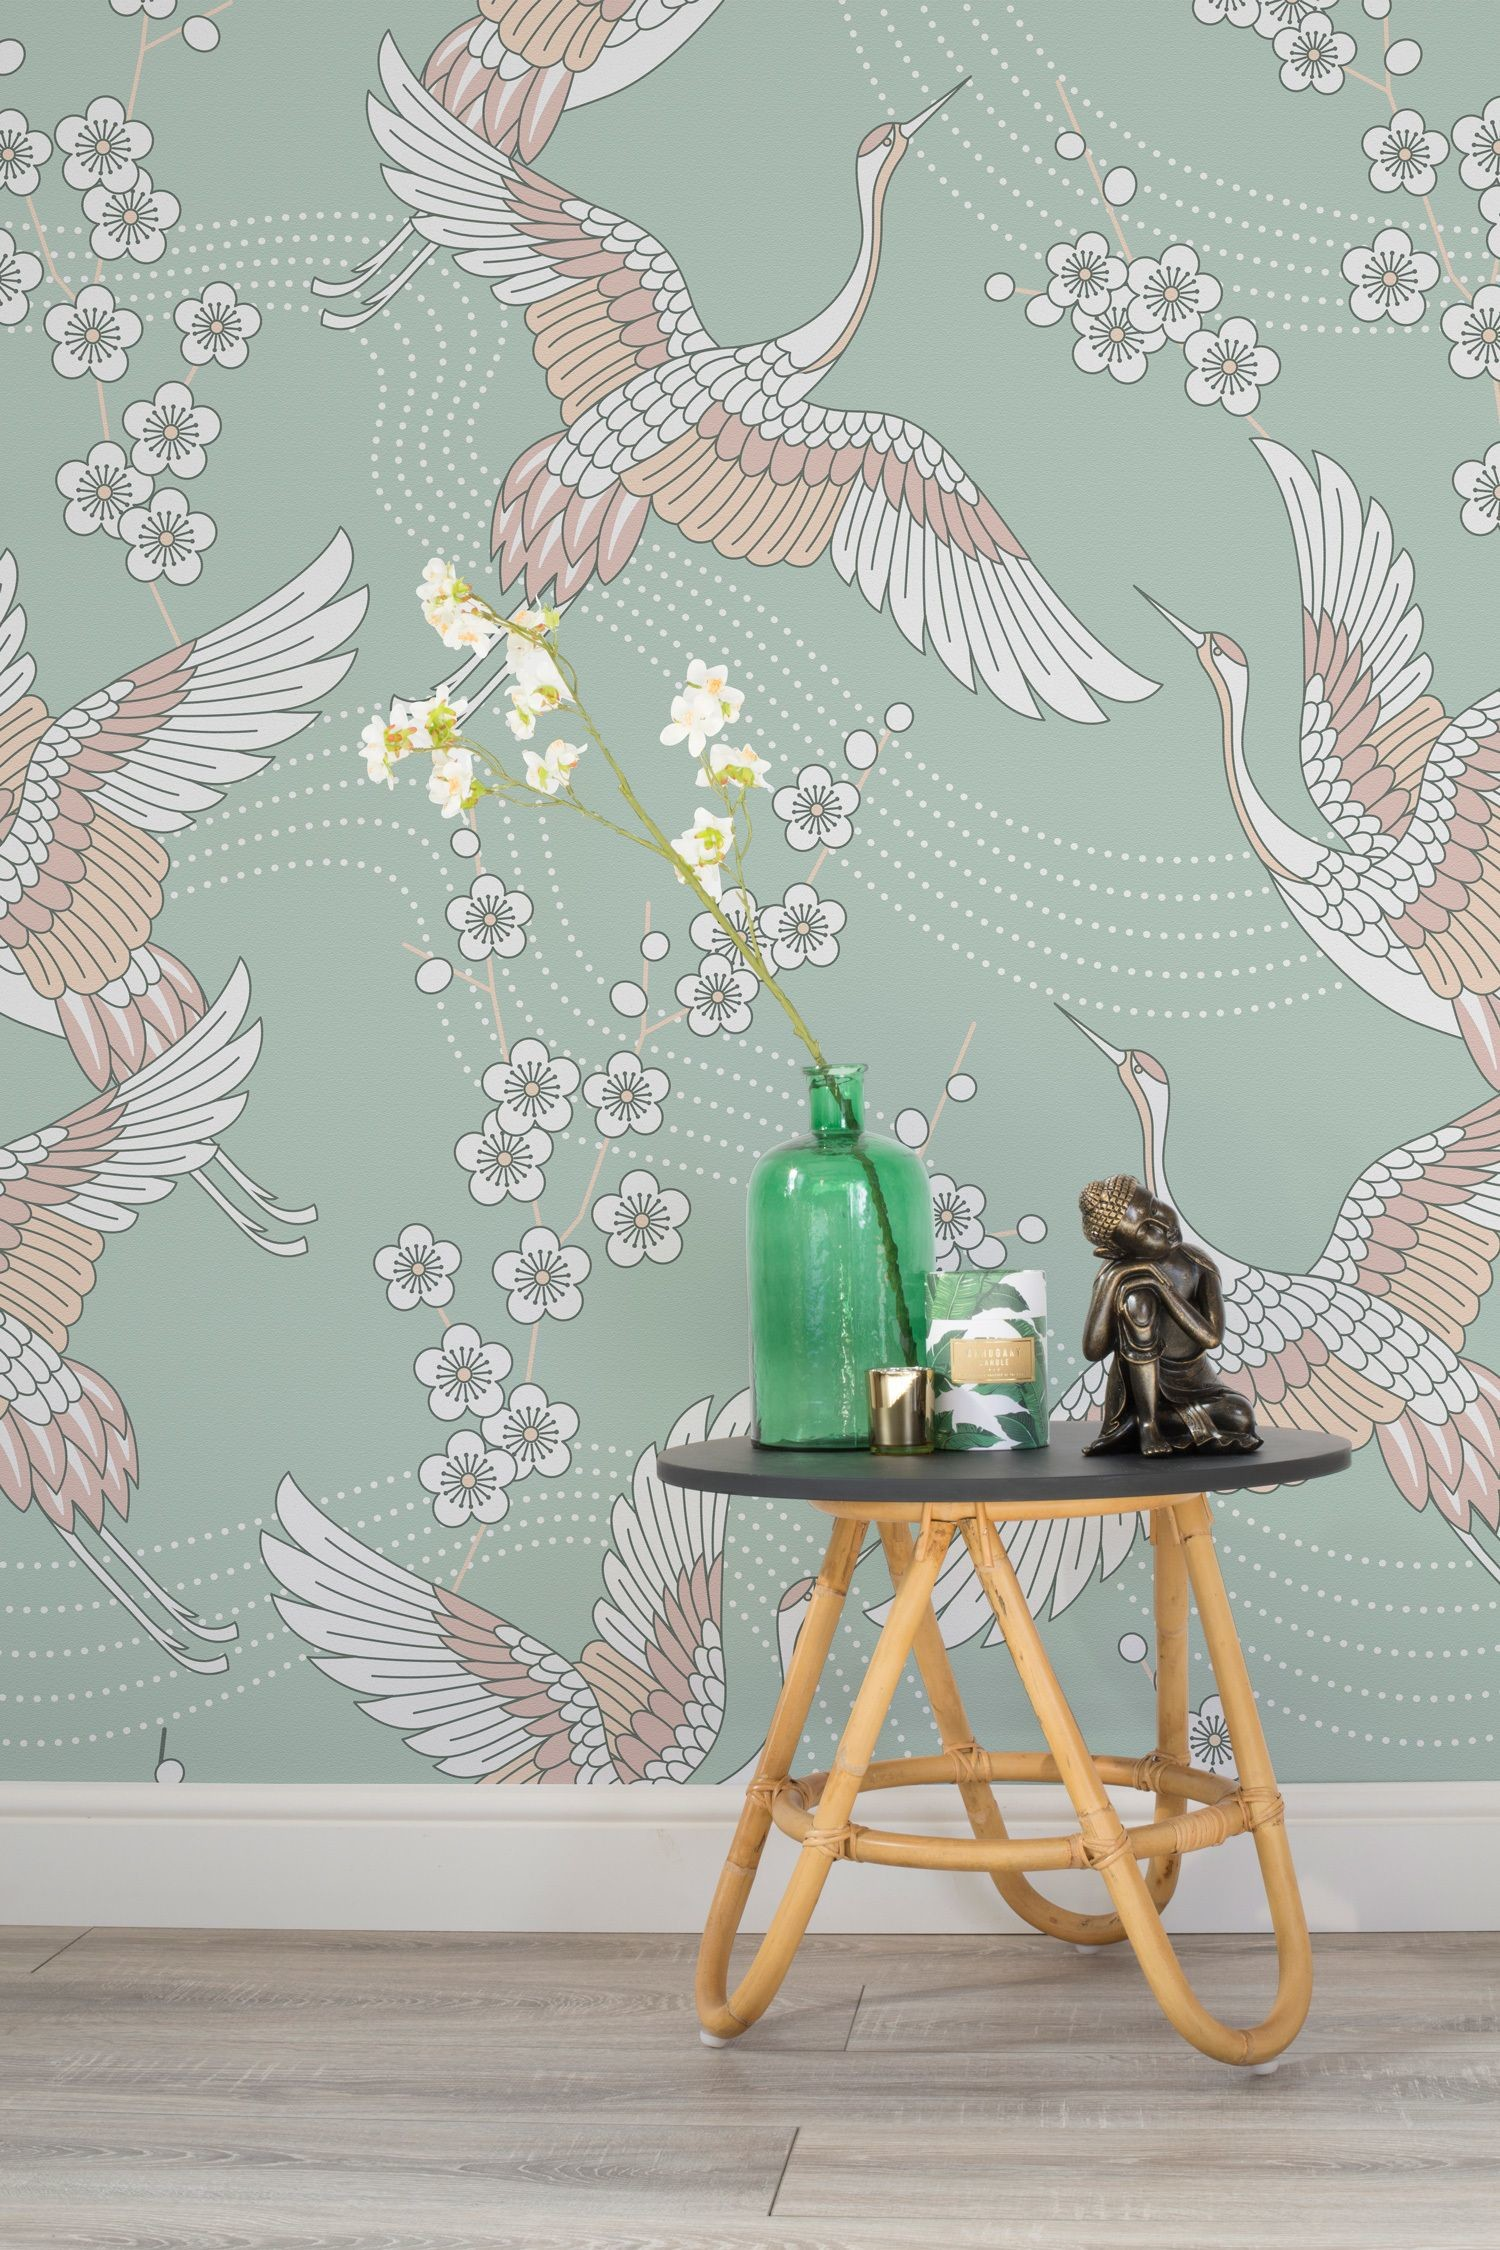 Res: 1500x2250, This oriental wallpaper design features a simple duck egg colour contrasted  with varying shades of pink. Accompany with simple, earthy materials such  as ...